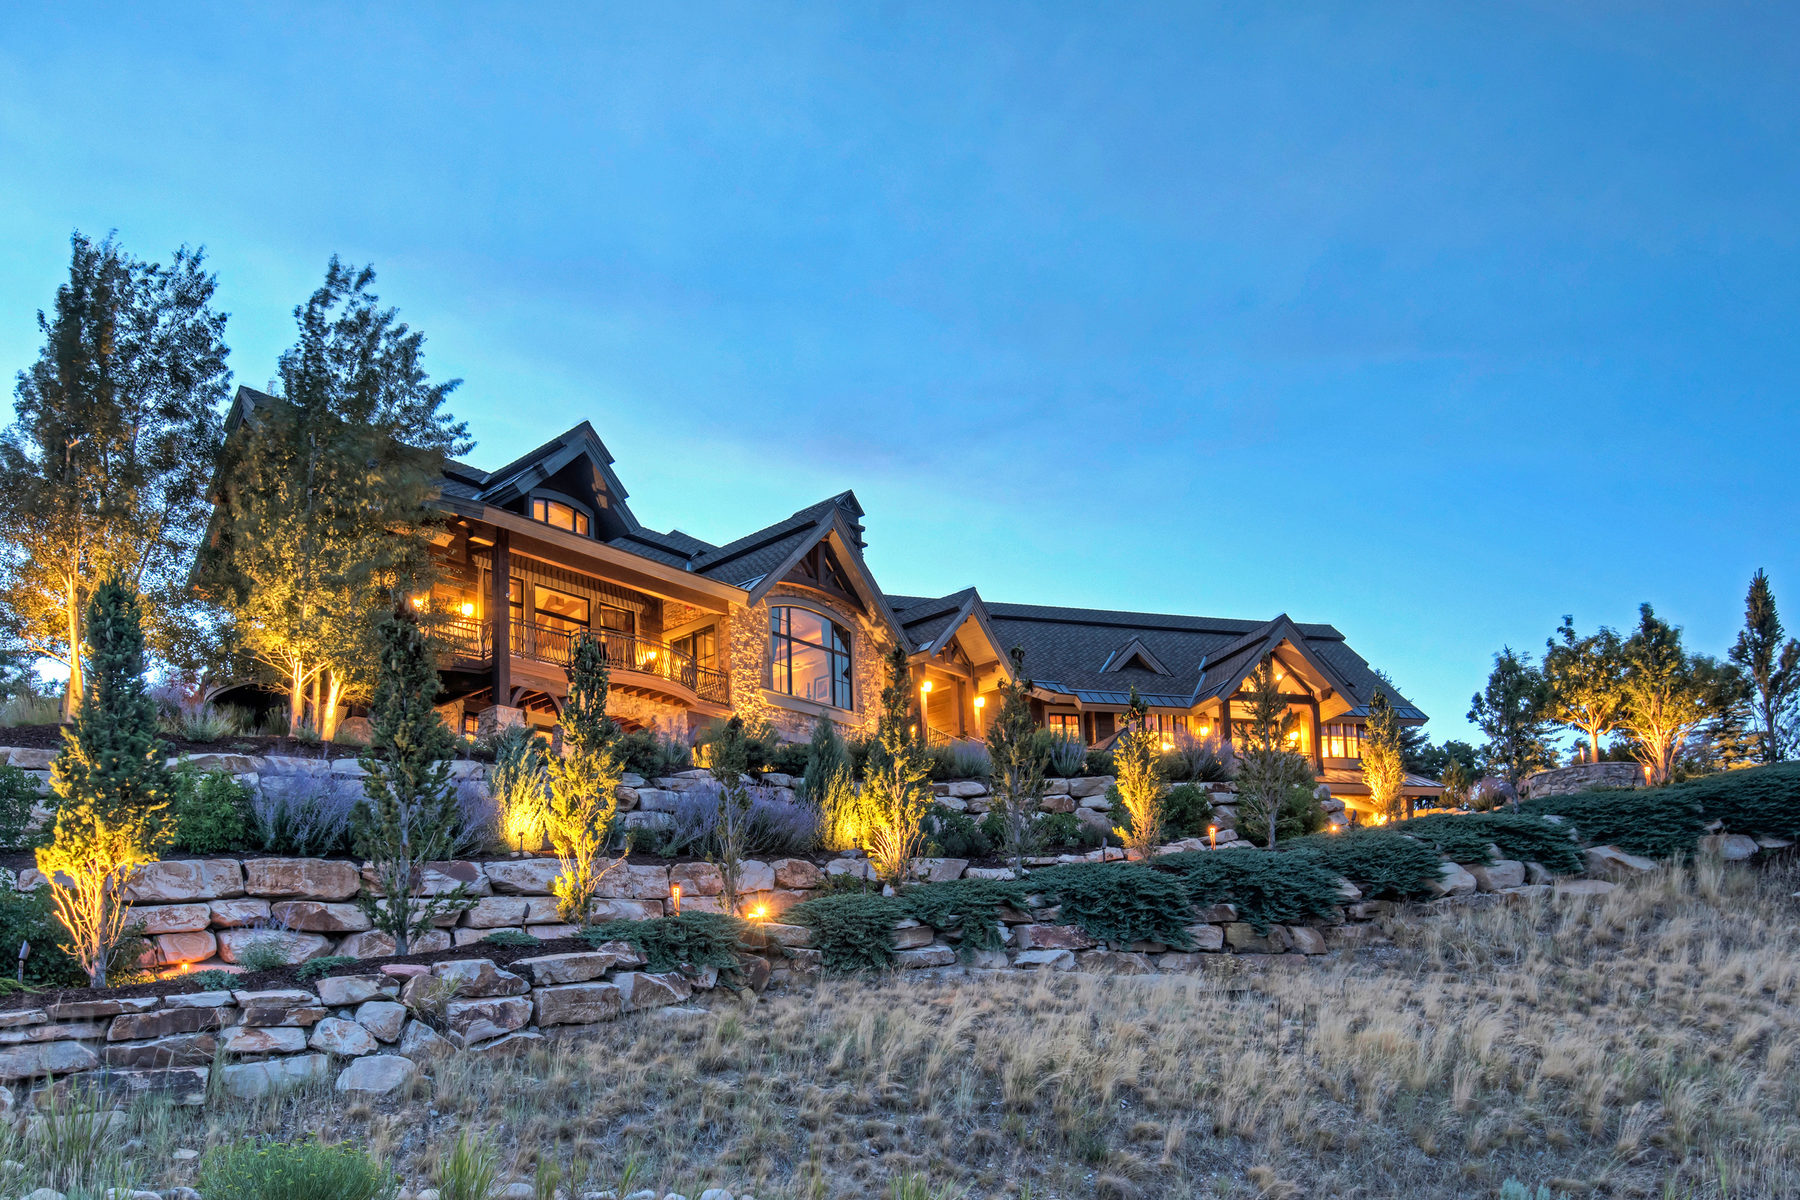 Villa per Vendita alle ore Great Deer Valley, Park City, Uinta Views! Fabulous Promontory Home! 8053 N Sunrise Loop Lot #47 Park City, Utah, 84098 Stati Uniti